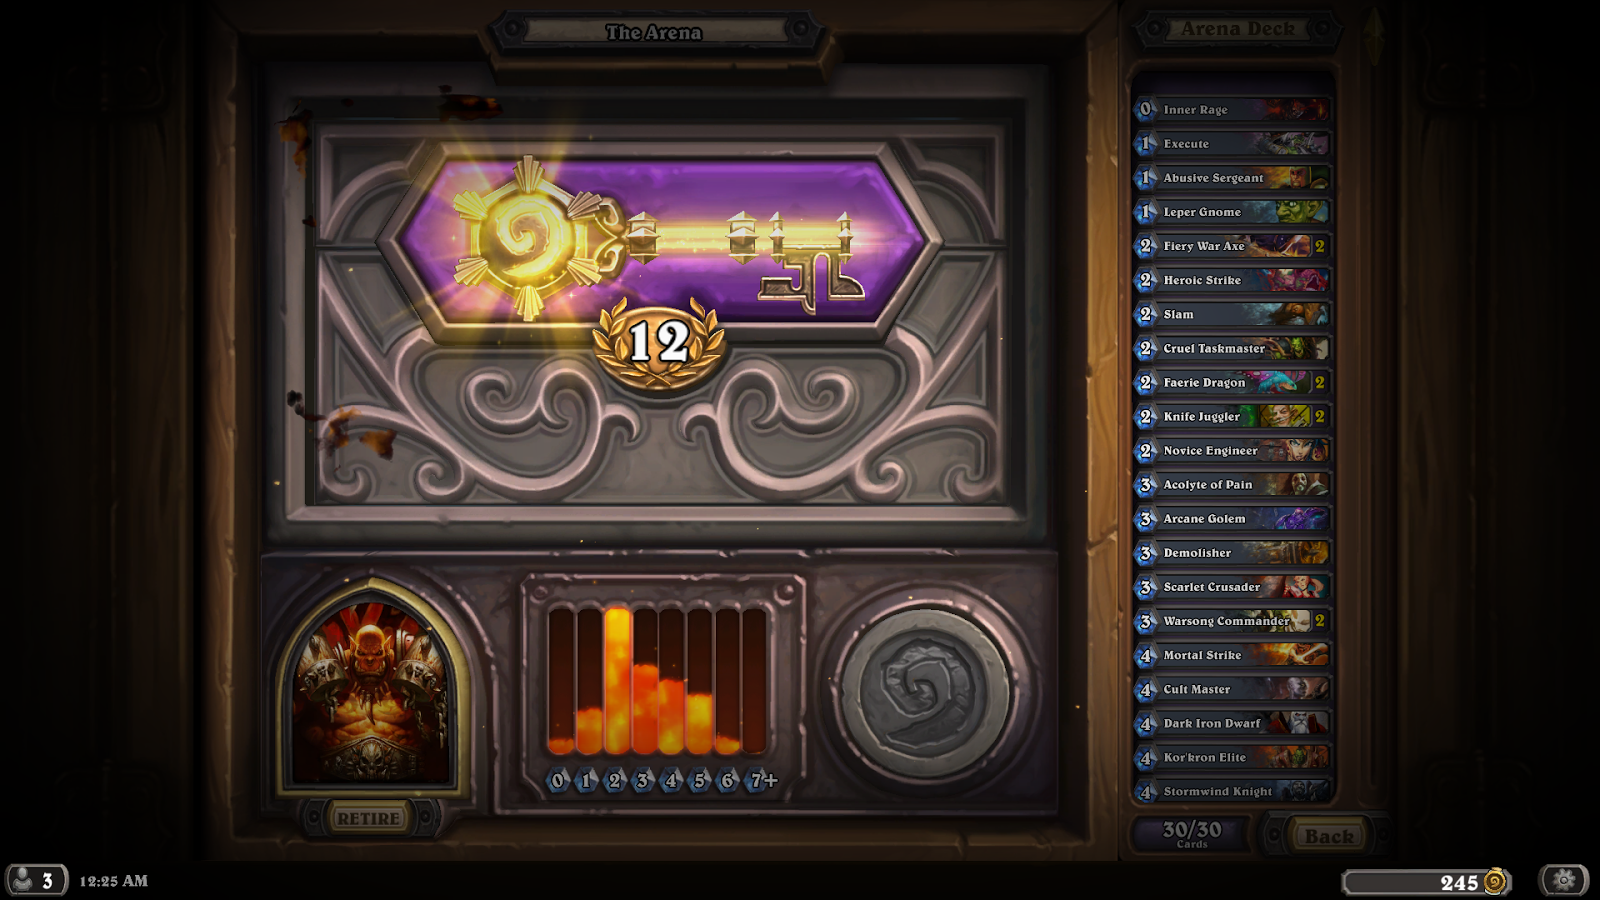 Hearthstone_Screenshot_12.12.2013.00.25.15